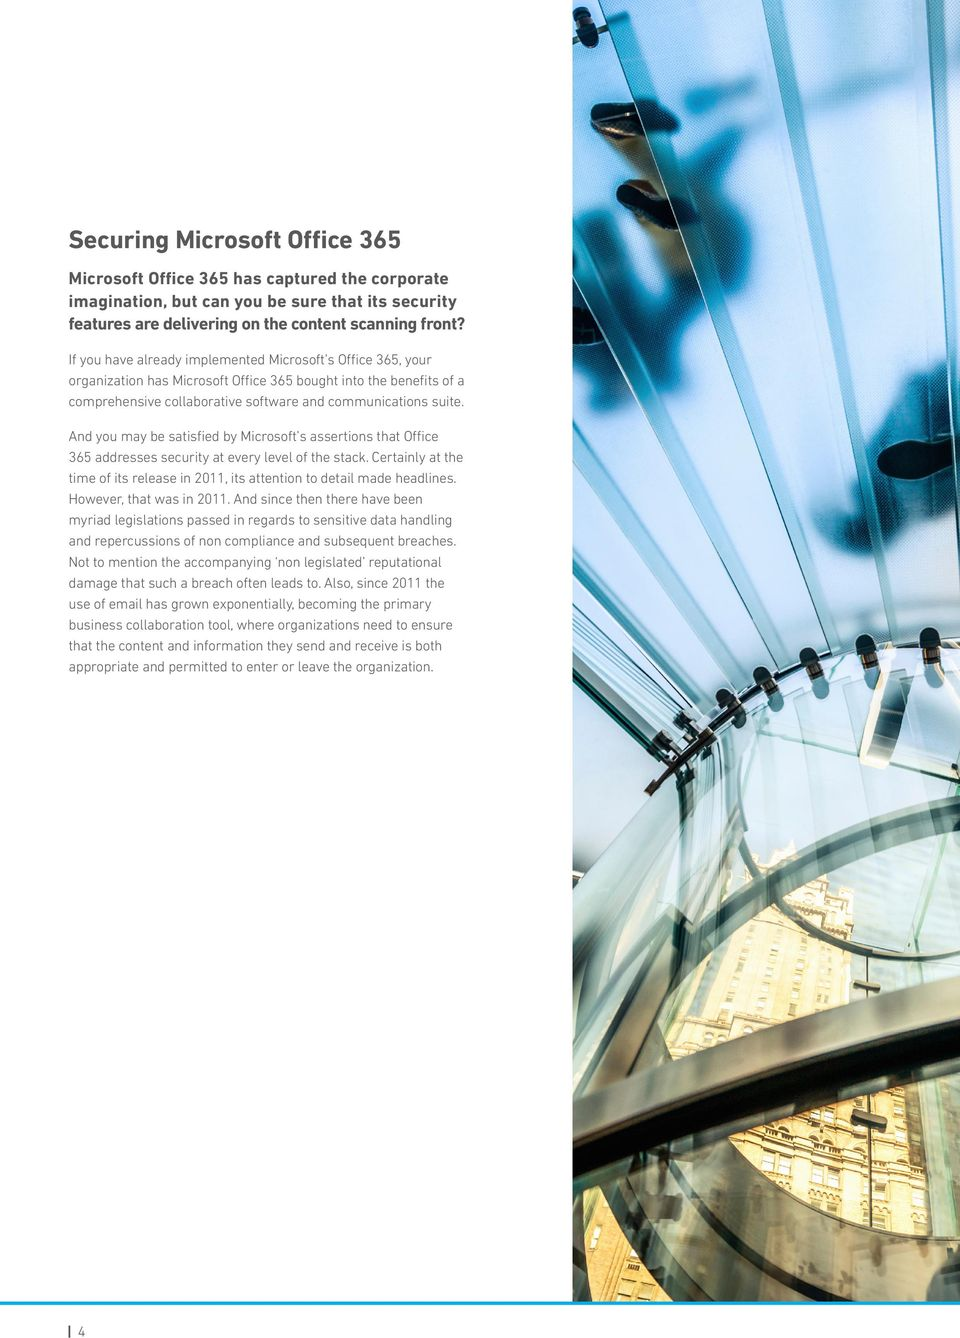 And you may be satisfied by Microsoft s assertions that Office 365 addresses security at every level of the stack. Certainly at the time of its release in 2011, its attention to detail made headlines.